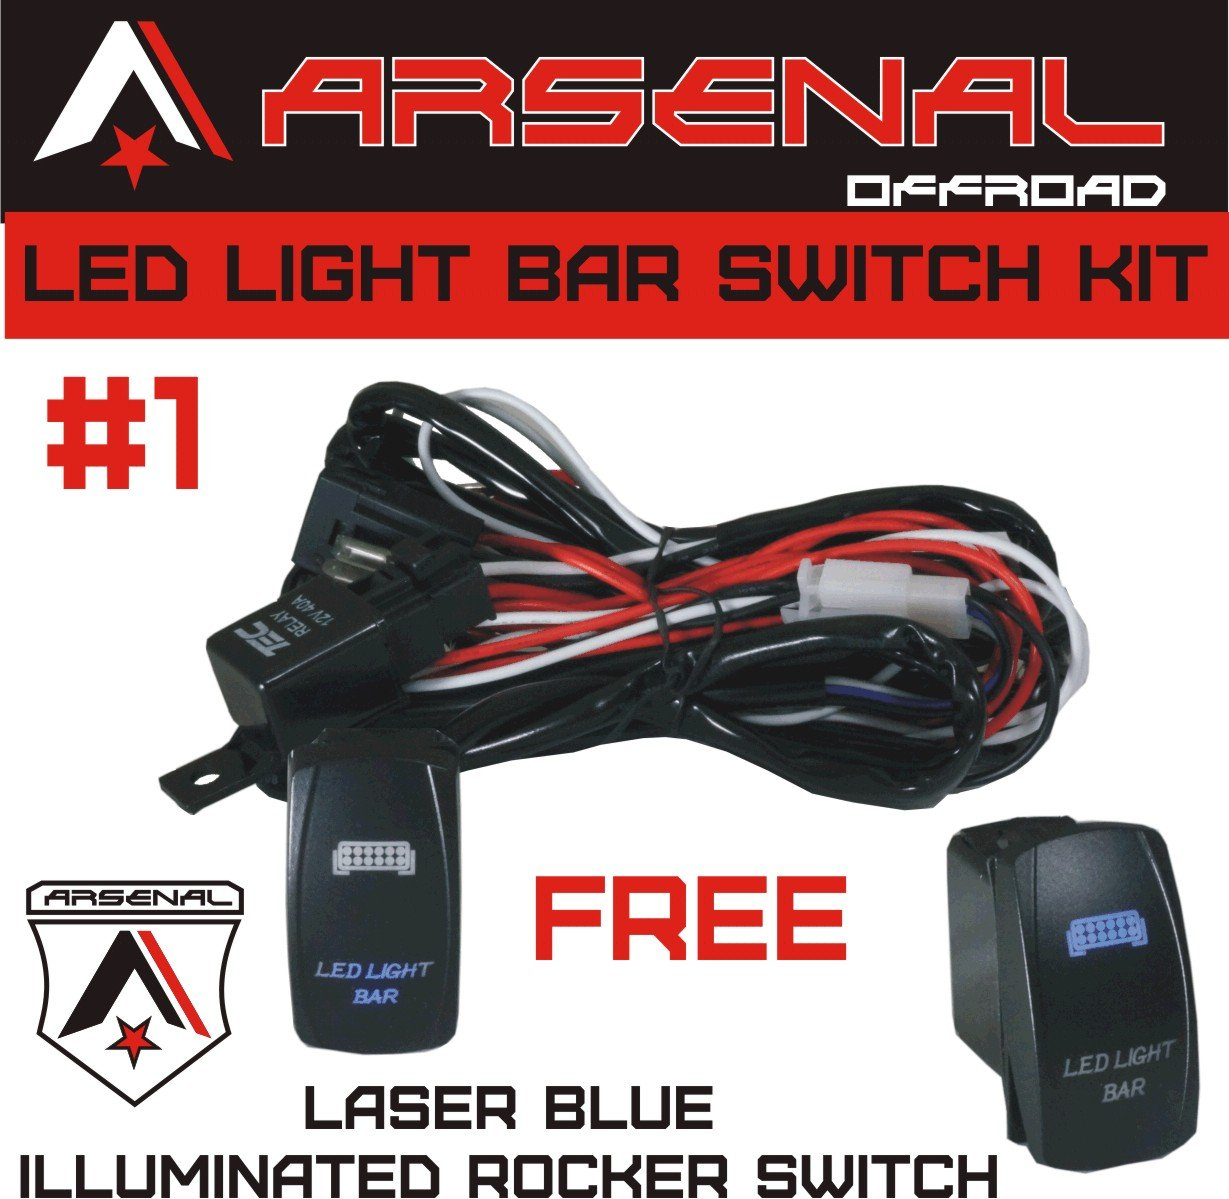 1 Heavy Duty Rocker Switch Wire Harness By Arsenal 3 Prong Wiring Diagram Offroad 40 Amp Relay Laser Blue Led 17ft Of 14g Utv Suv Off Road Boats